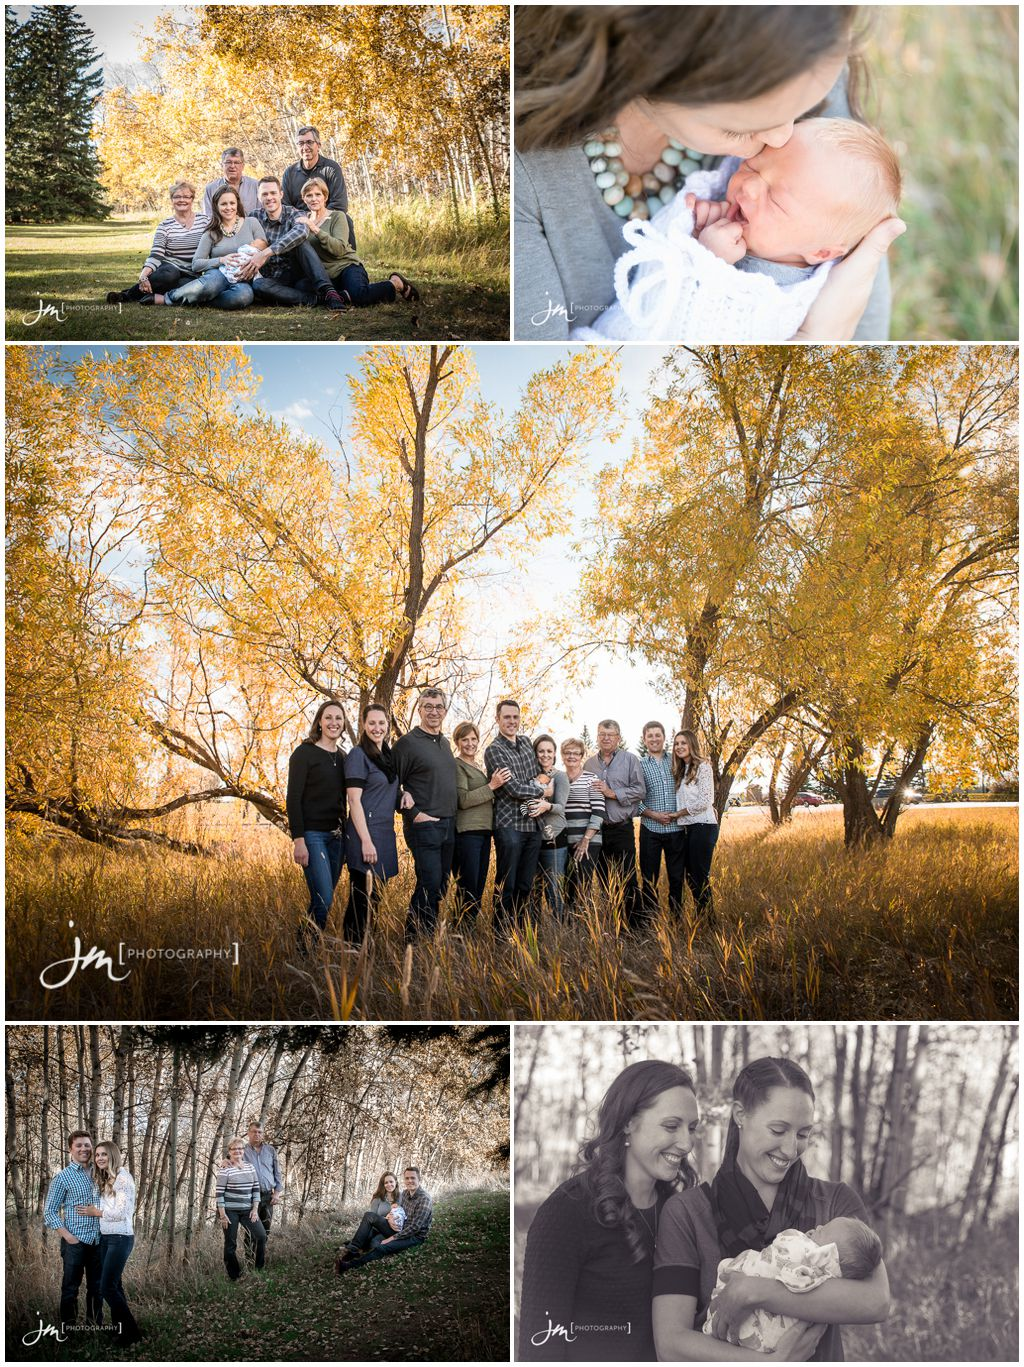 151010_3-Trainor-Calgary-Family-Photographers-JM_Photography-Amy-Cheng